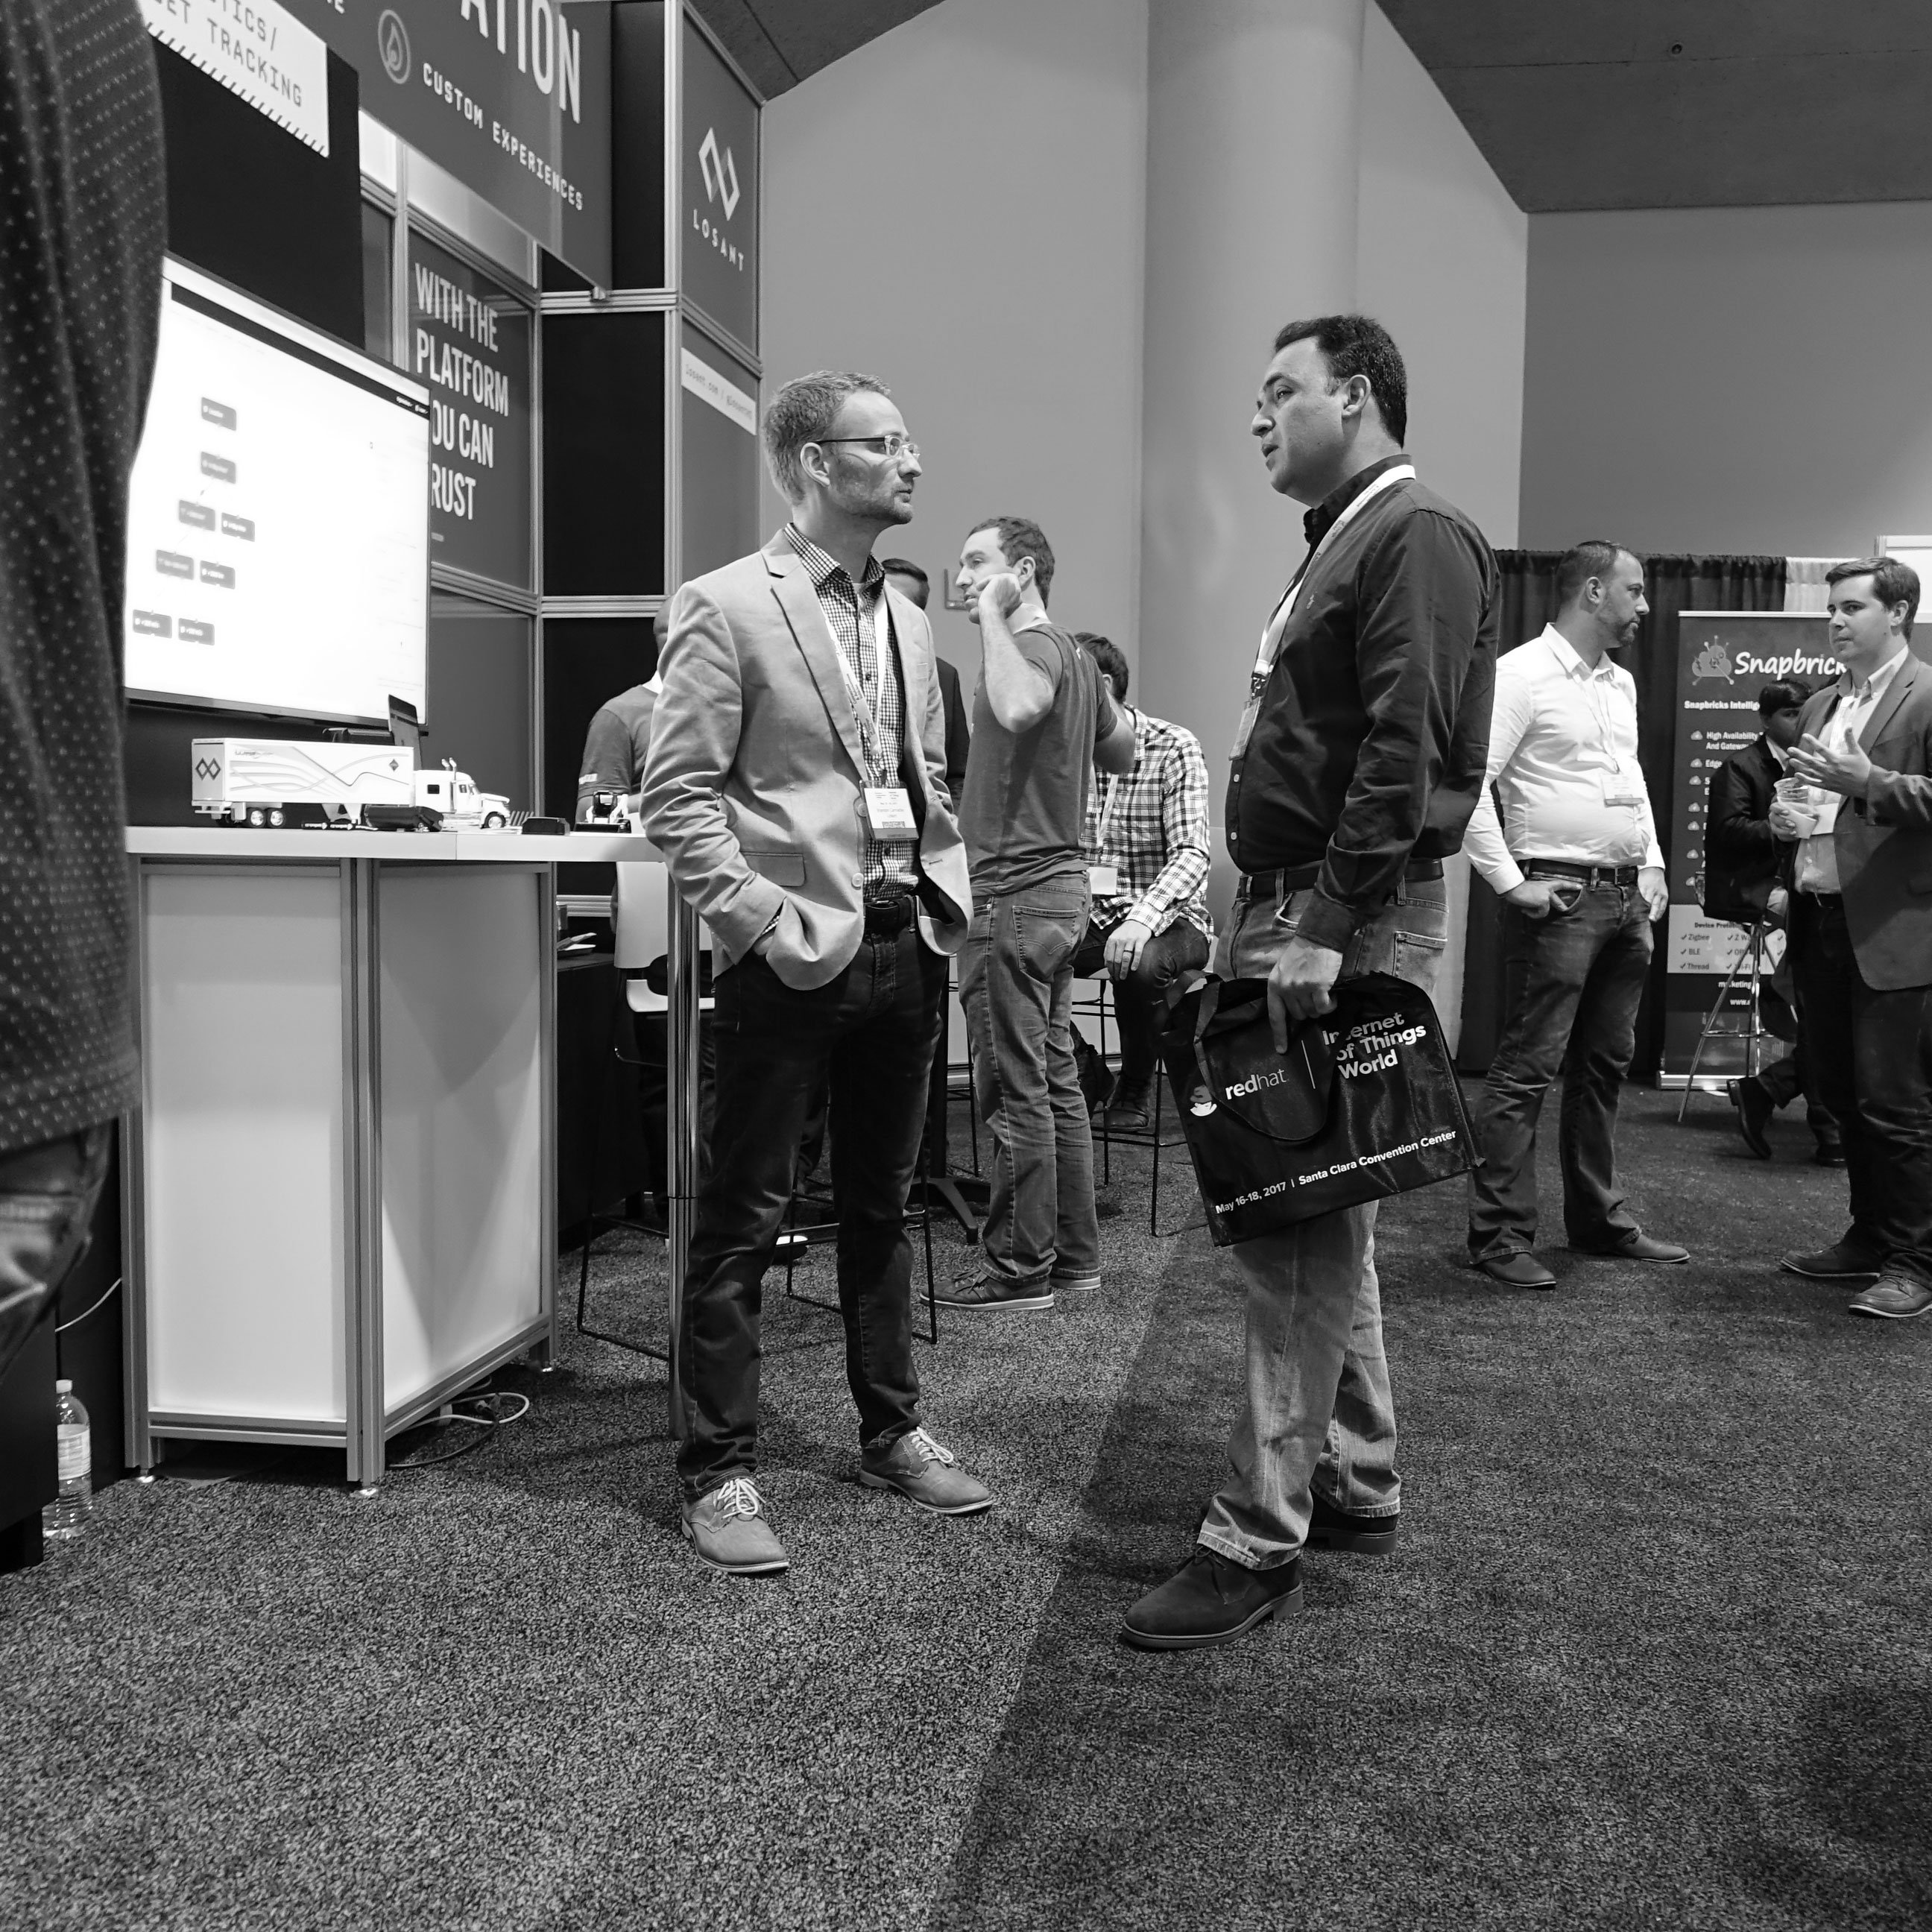 Brandon Cannaday meeting with potential client at Losant IoT World 2017 booth